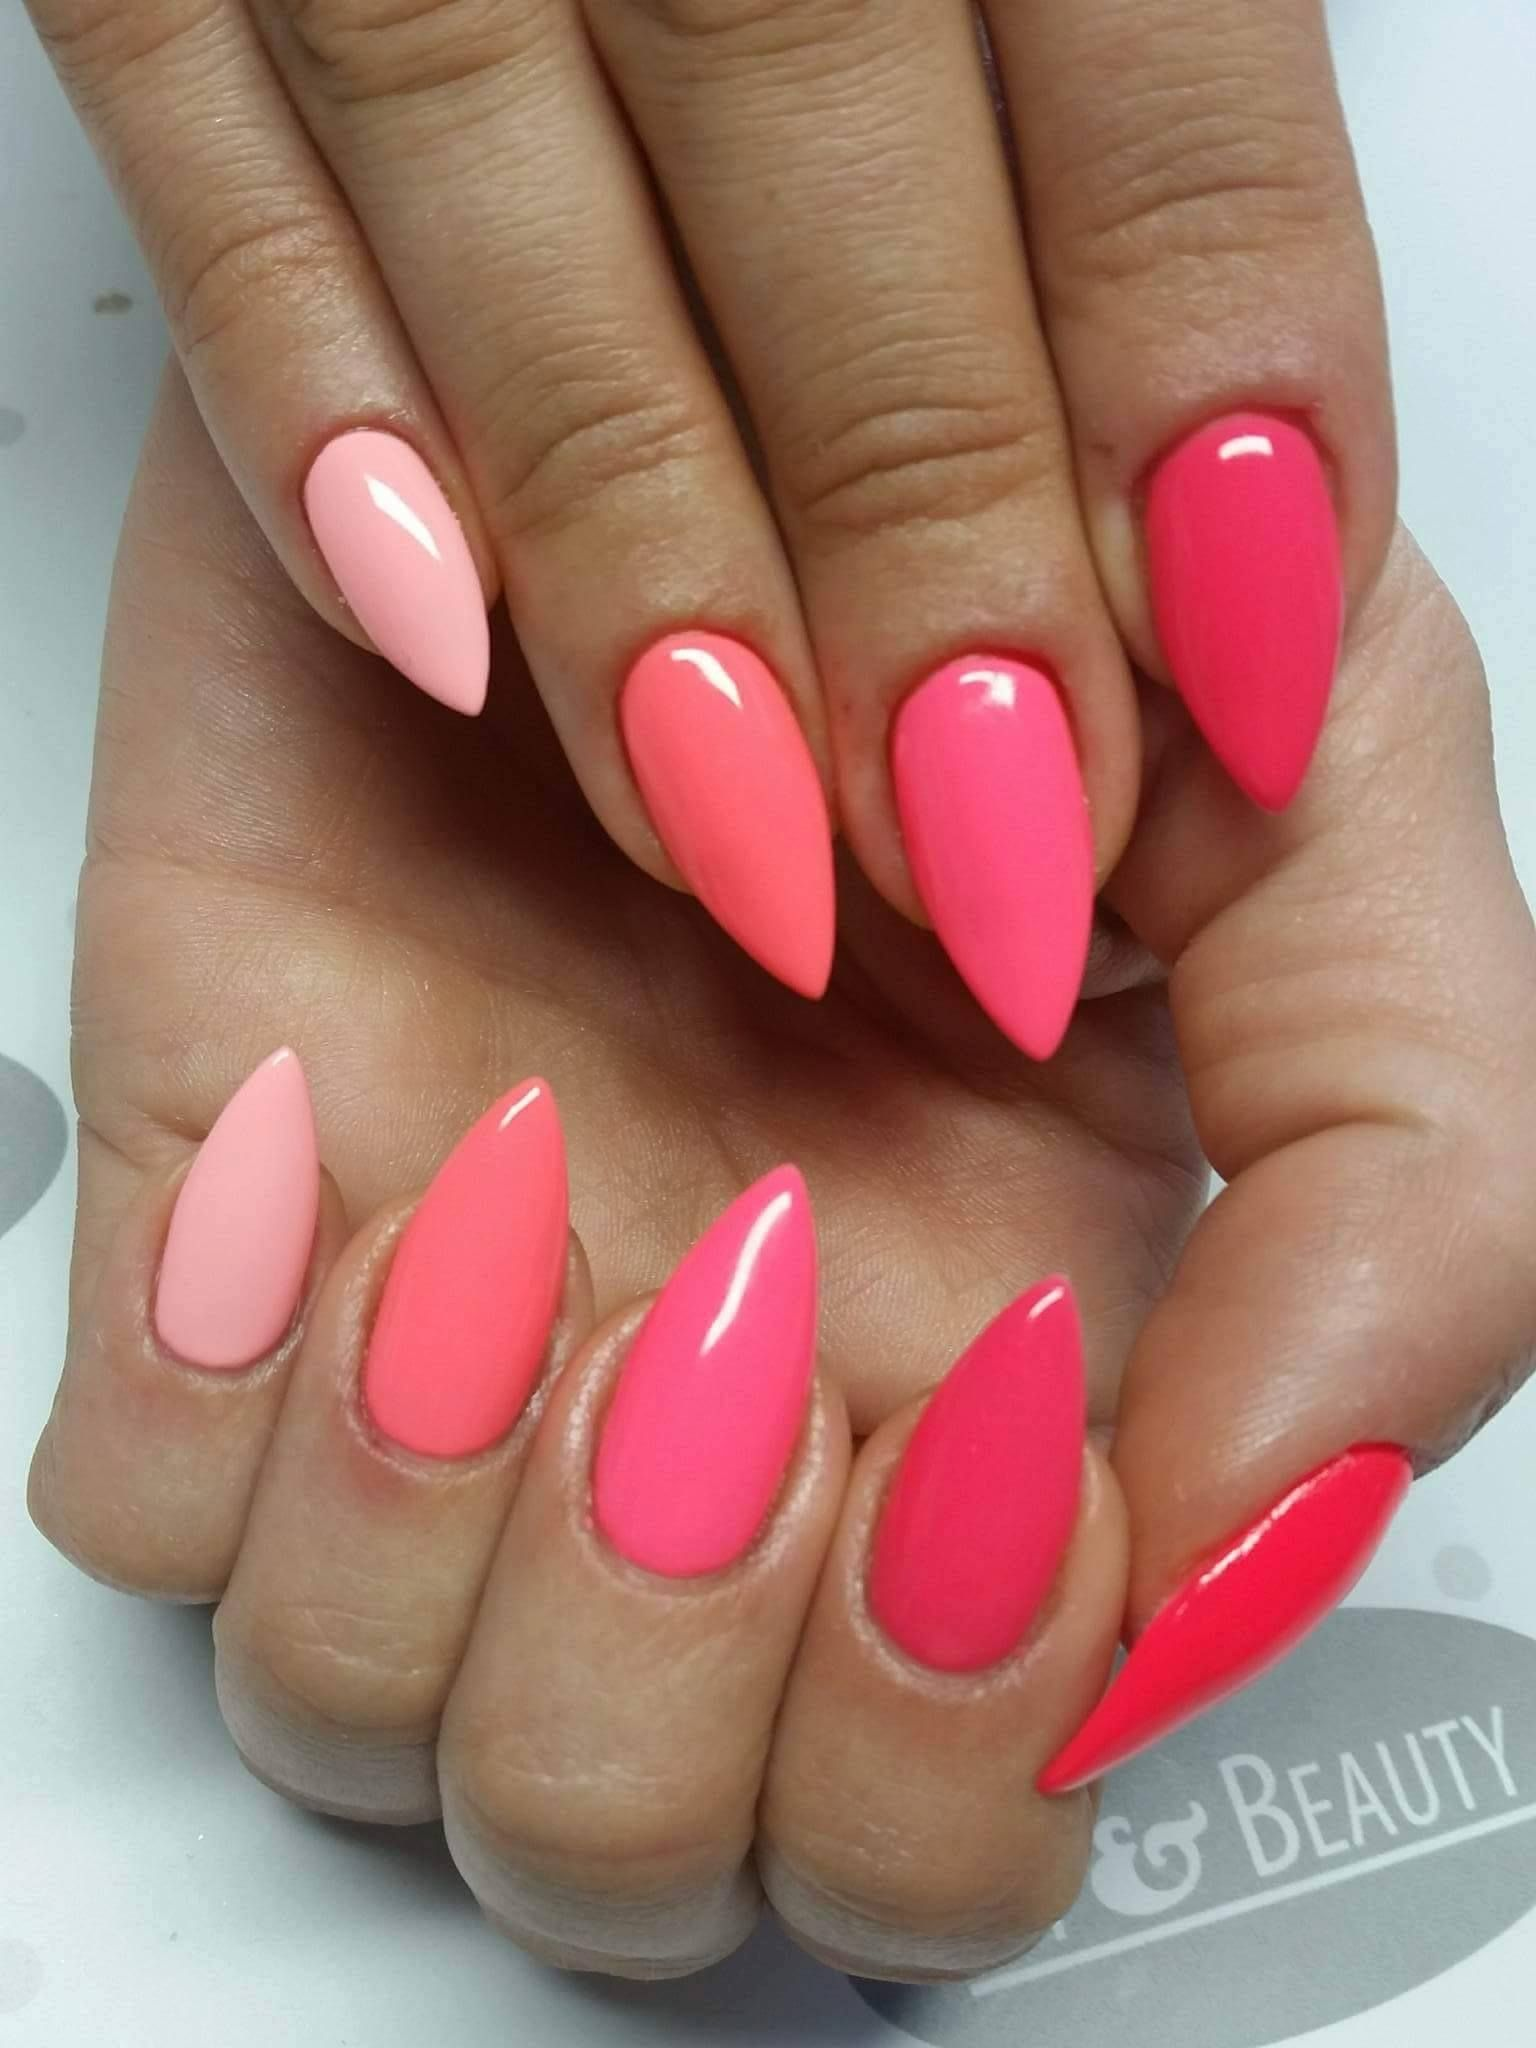 Pin by Helena Gomez on Nail - Nagel | Pinterest | Manicure, Make up ...